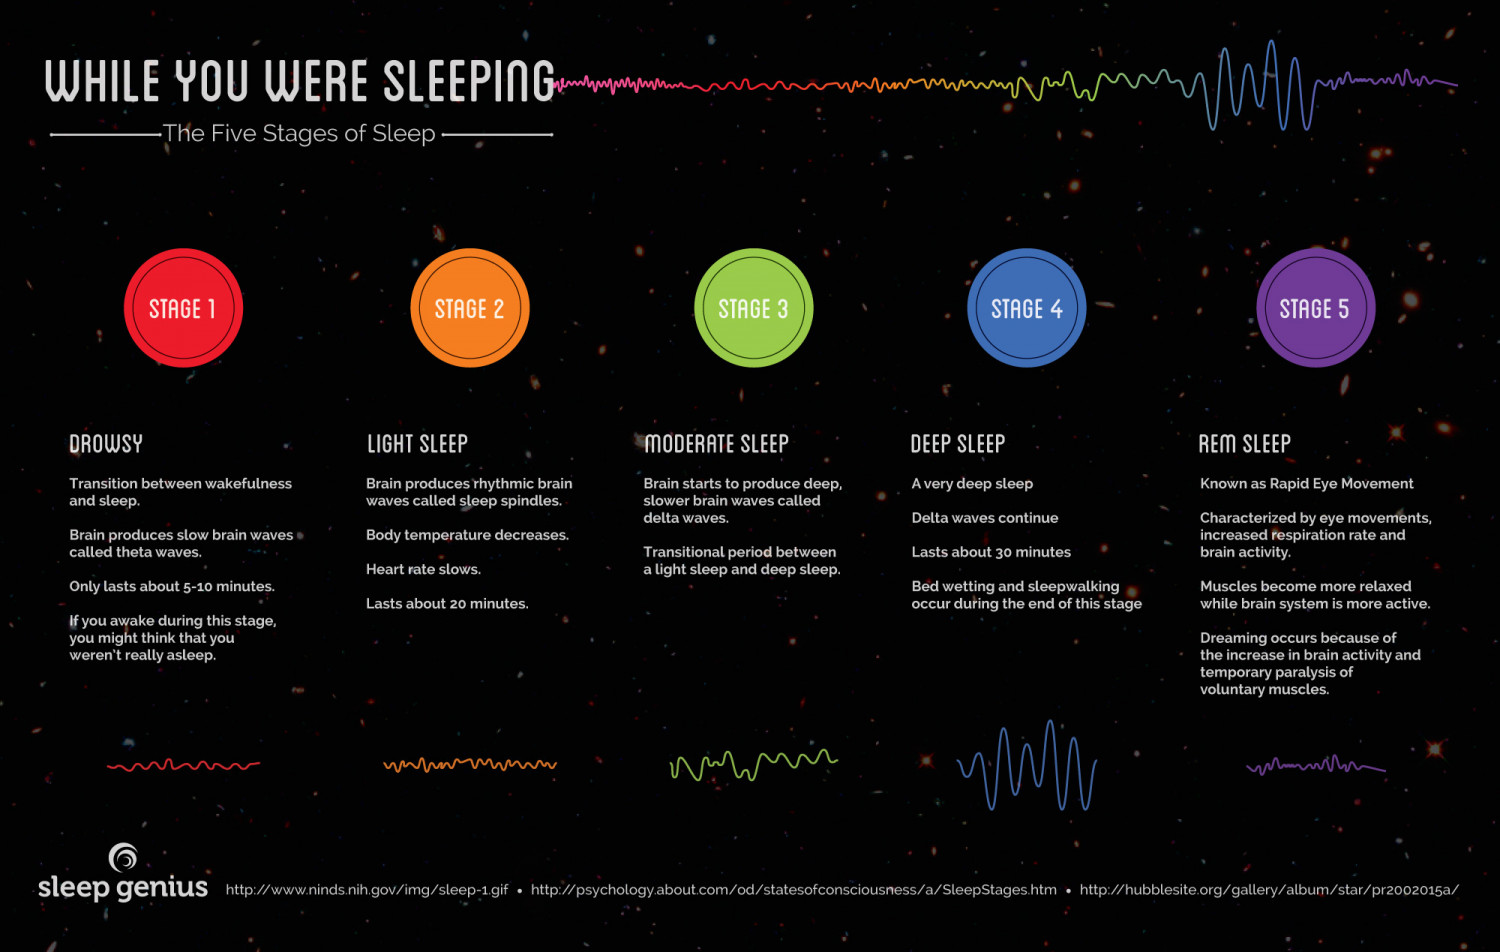 While You Were Sleeping Infographic